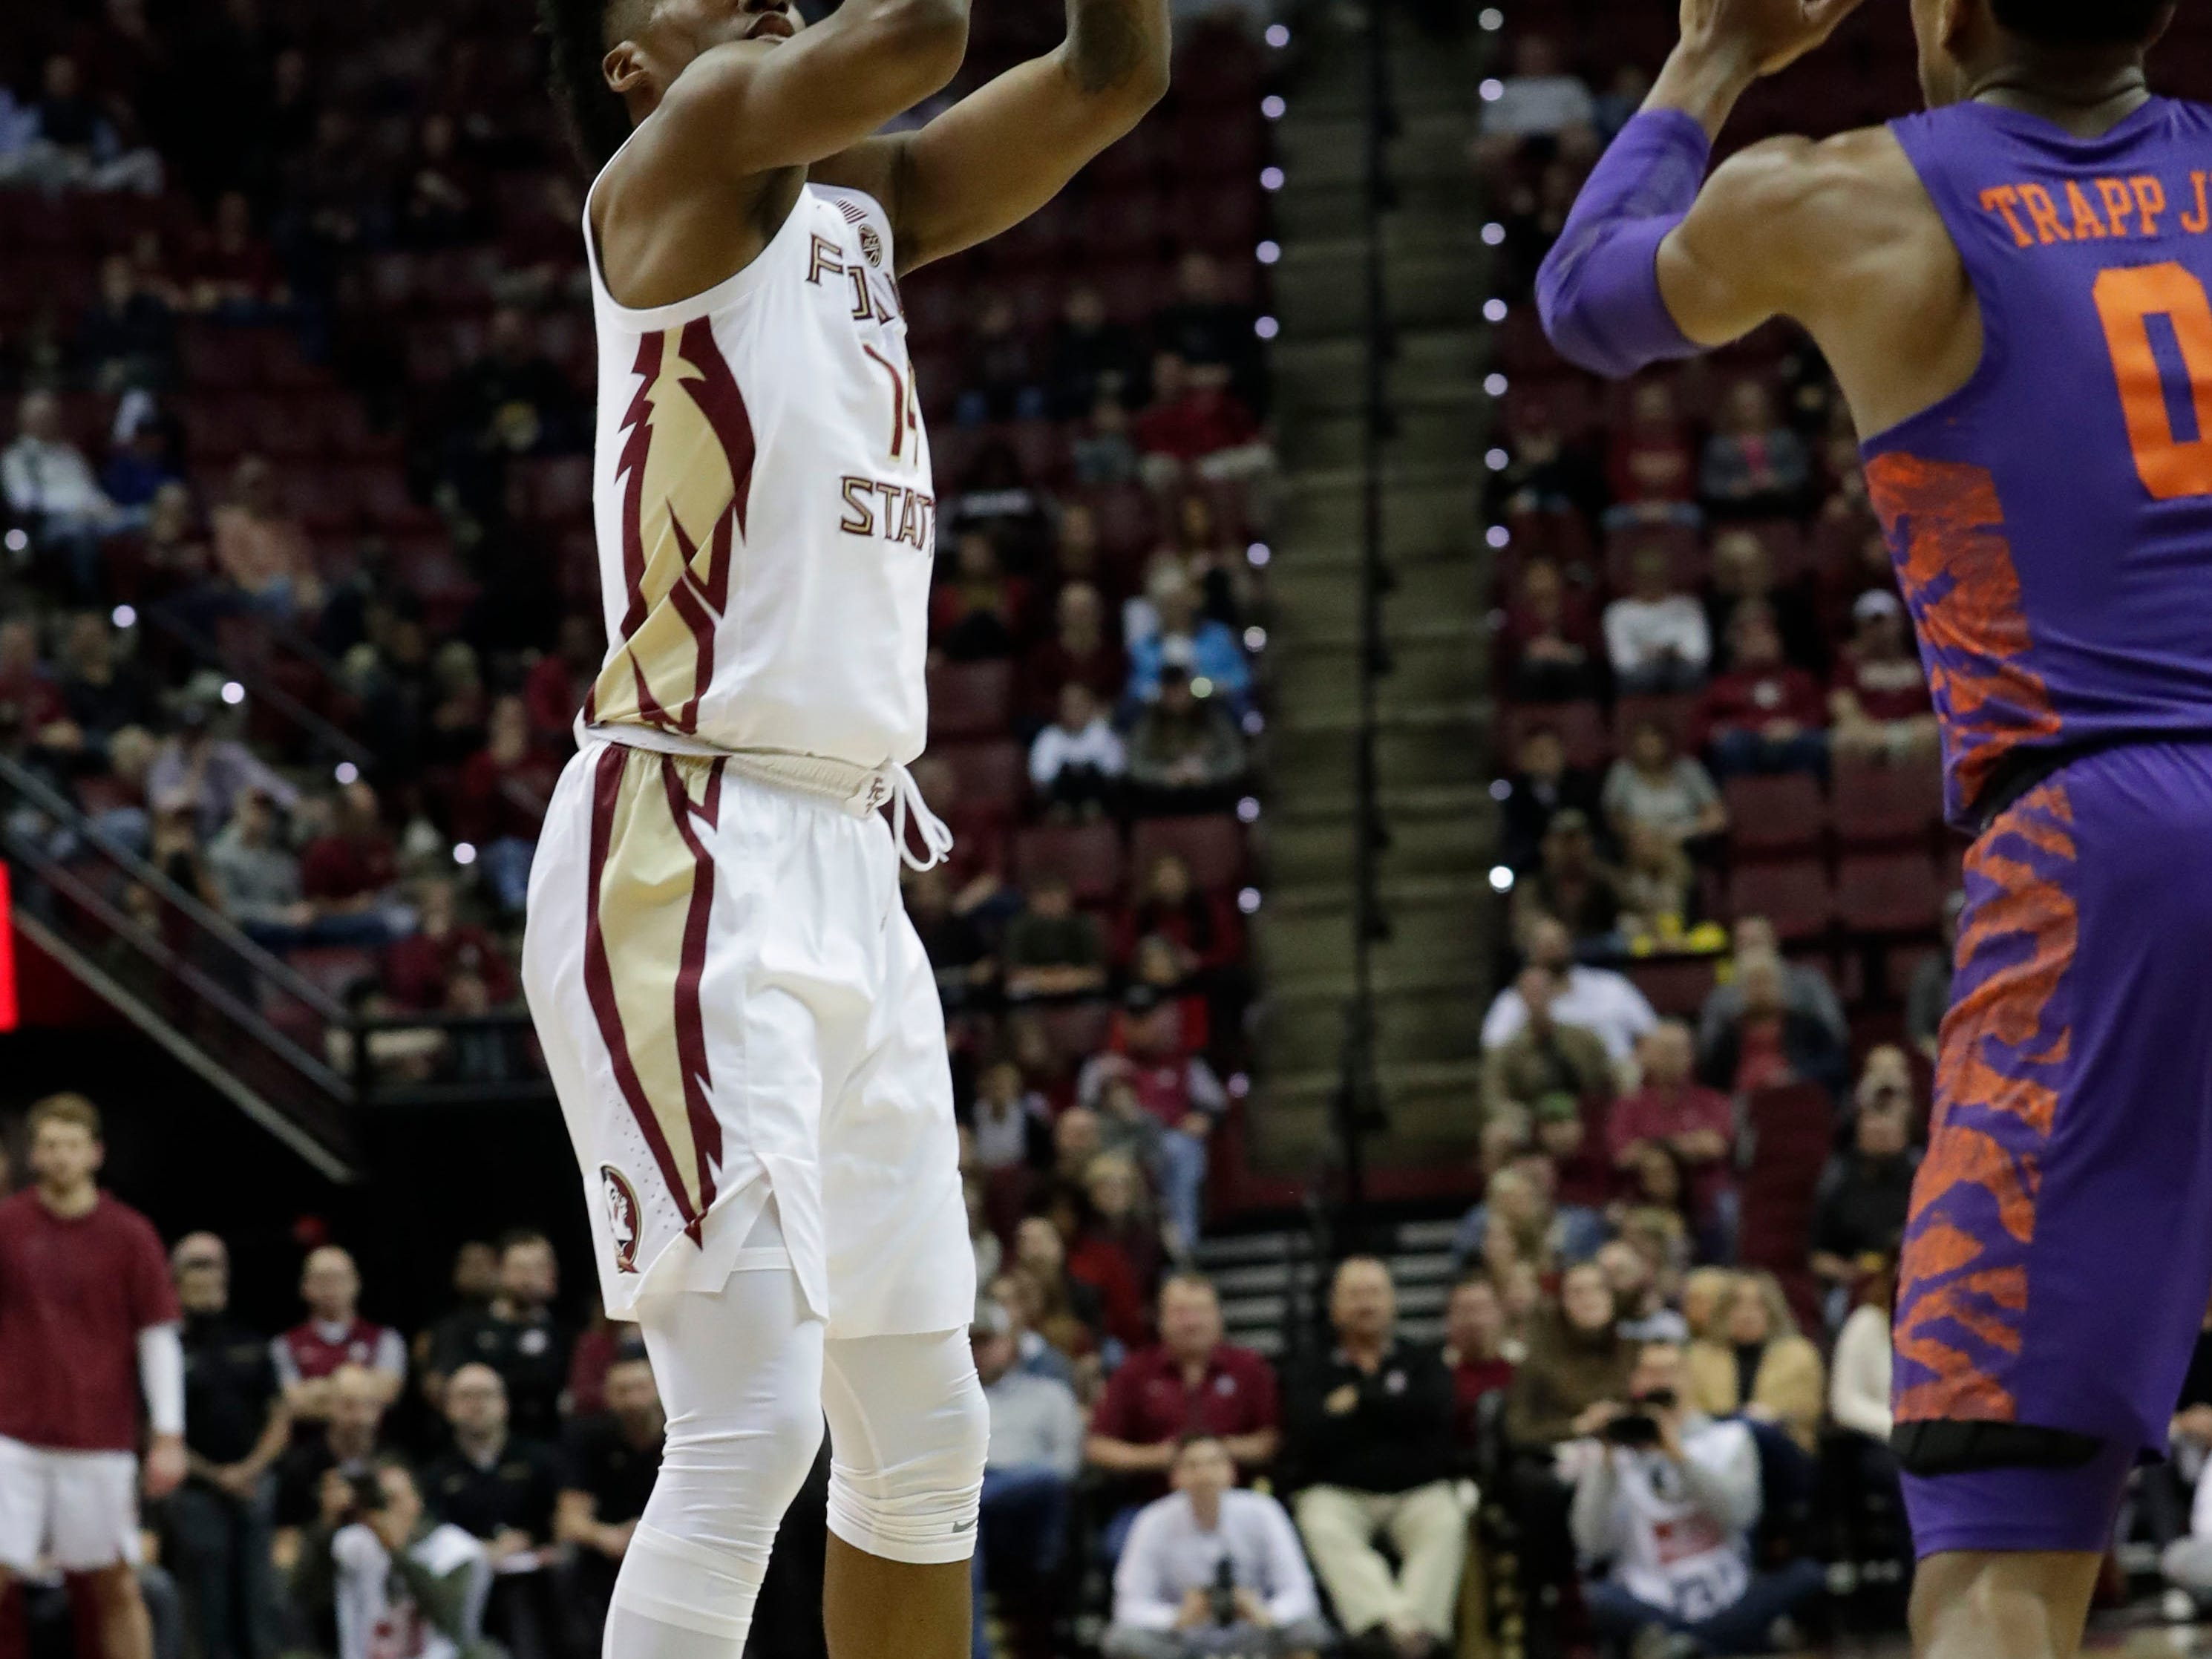 Florida State Seminoles guard Terance Mann (14) shoots for three over Clemson Tigers guard Clyde Trapp (0). The Florida State Seminoles face off against the Clemson Tigers at the Tucker Civic Center, Tuesday, Jan. 22, 2019.